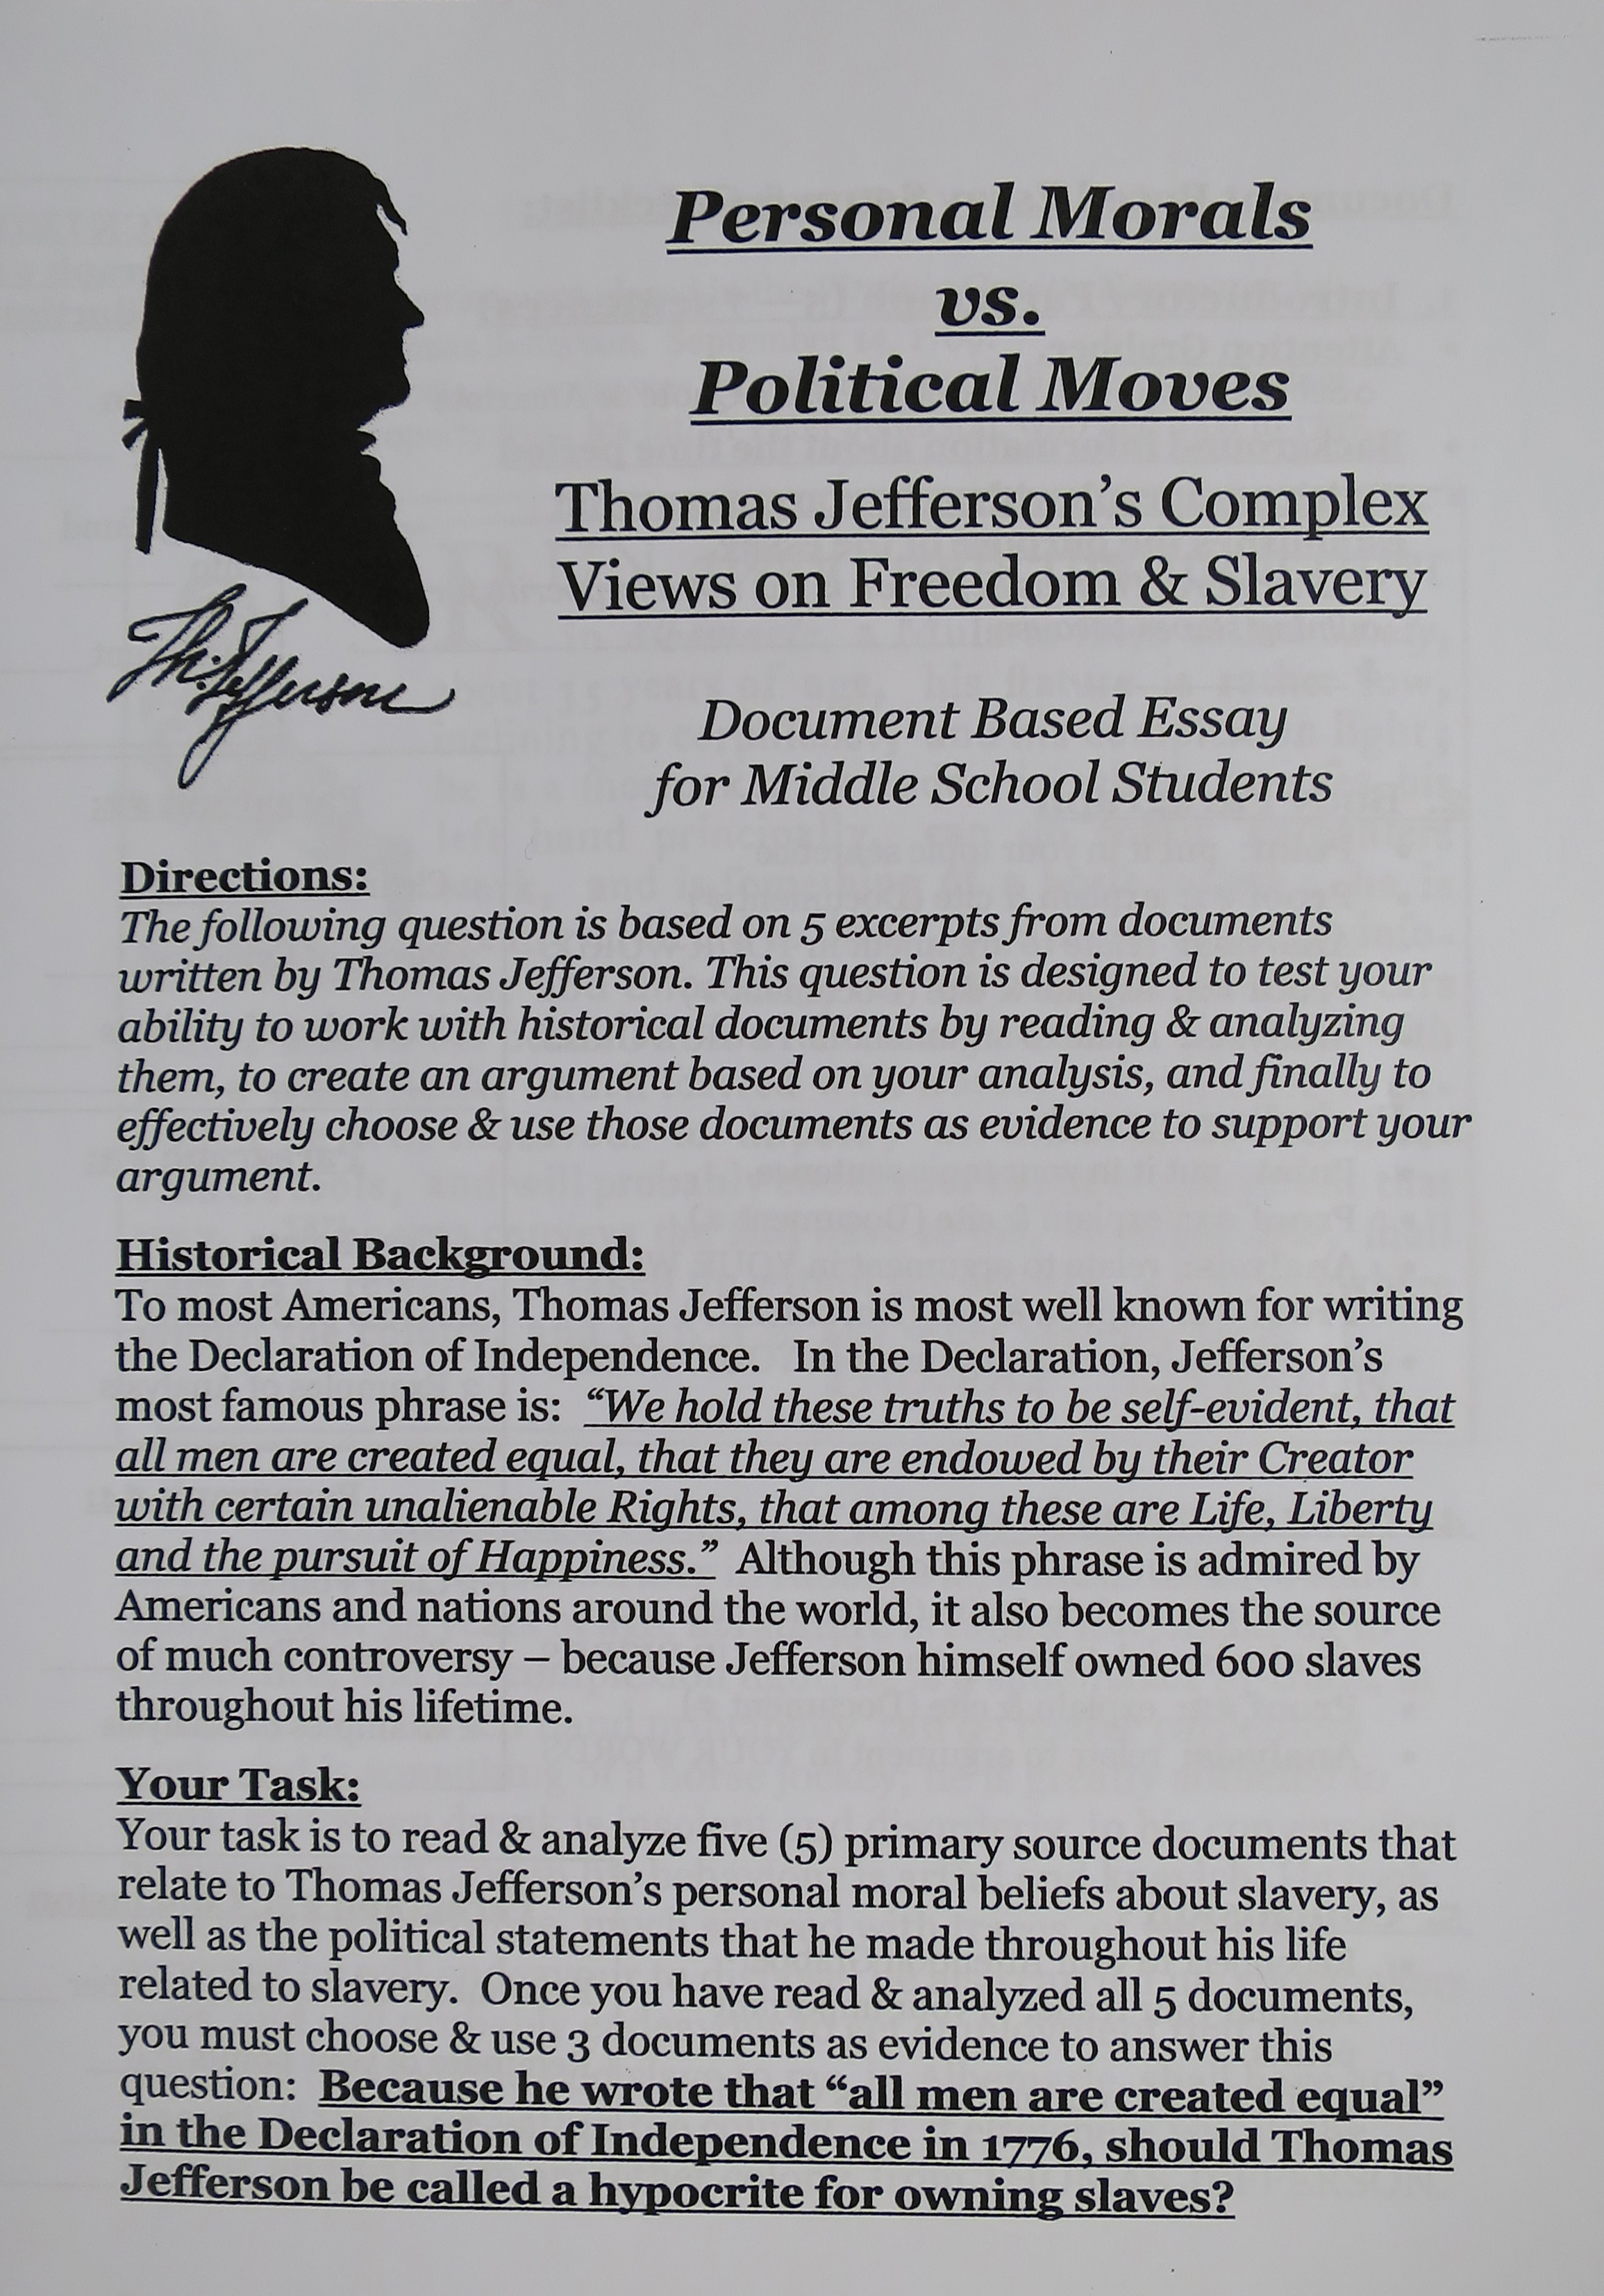 an analysis of the paper using jeffersons declaration of independence This research paper a brief analysis of the declaration of independence and other 64,000+ term papers, college essay examples and free essays are available now on reviewessayscom autor: review • march 1, 2011 • research paper • 781 words (4 pages) • 726 views.